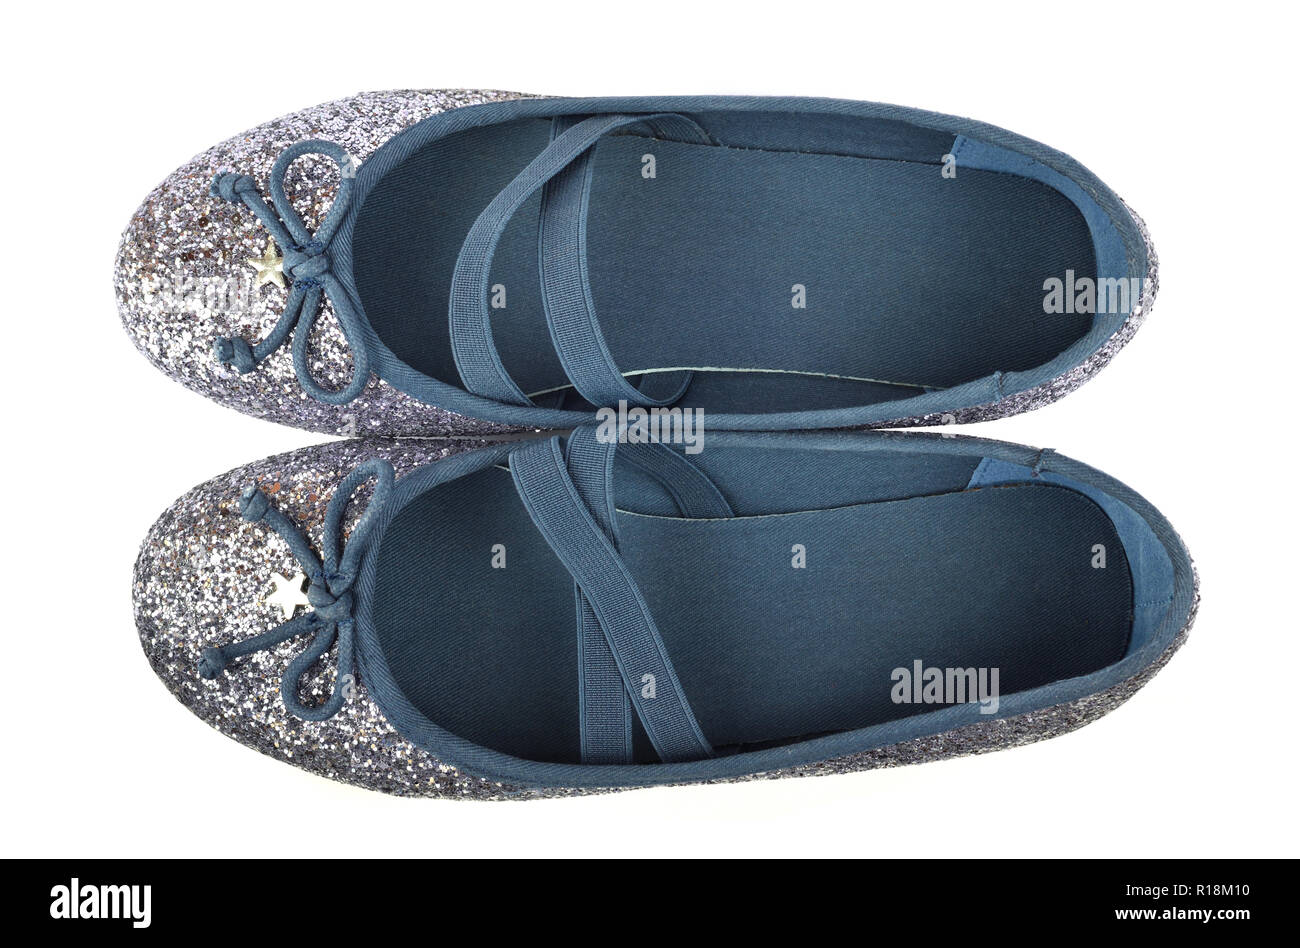 Shimmer silver blue ballerina flat shoes with crossed elastic drawstrings and soft cotton lining - on white background - bird-eye-view - Stock Image